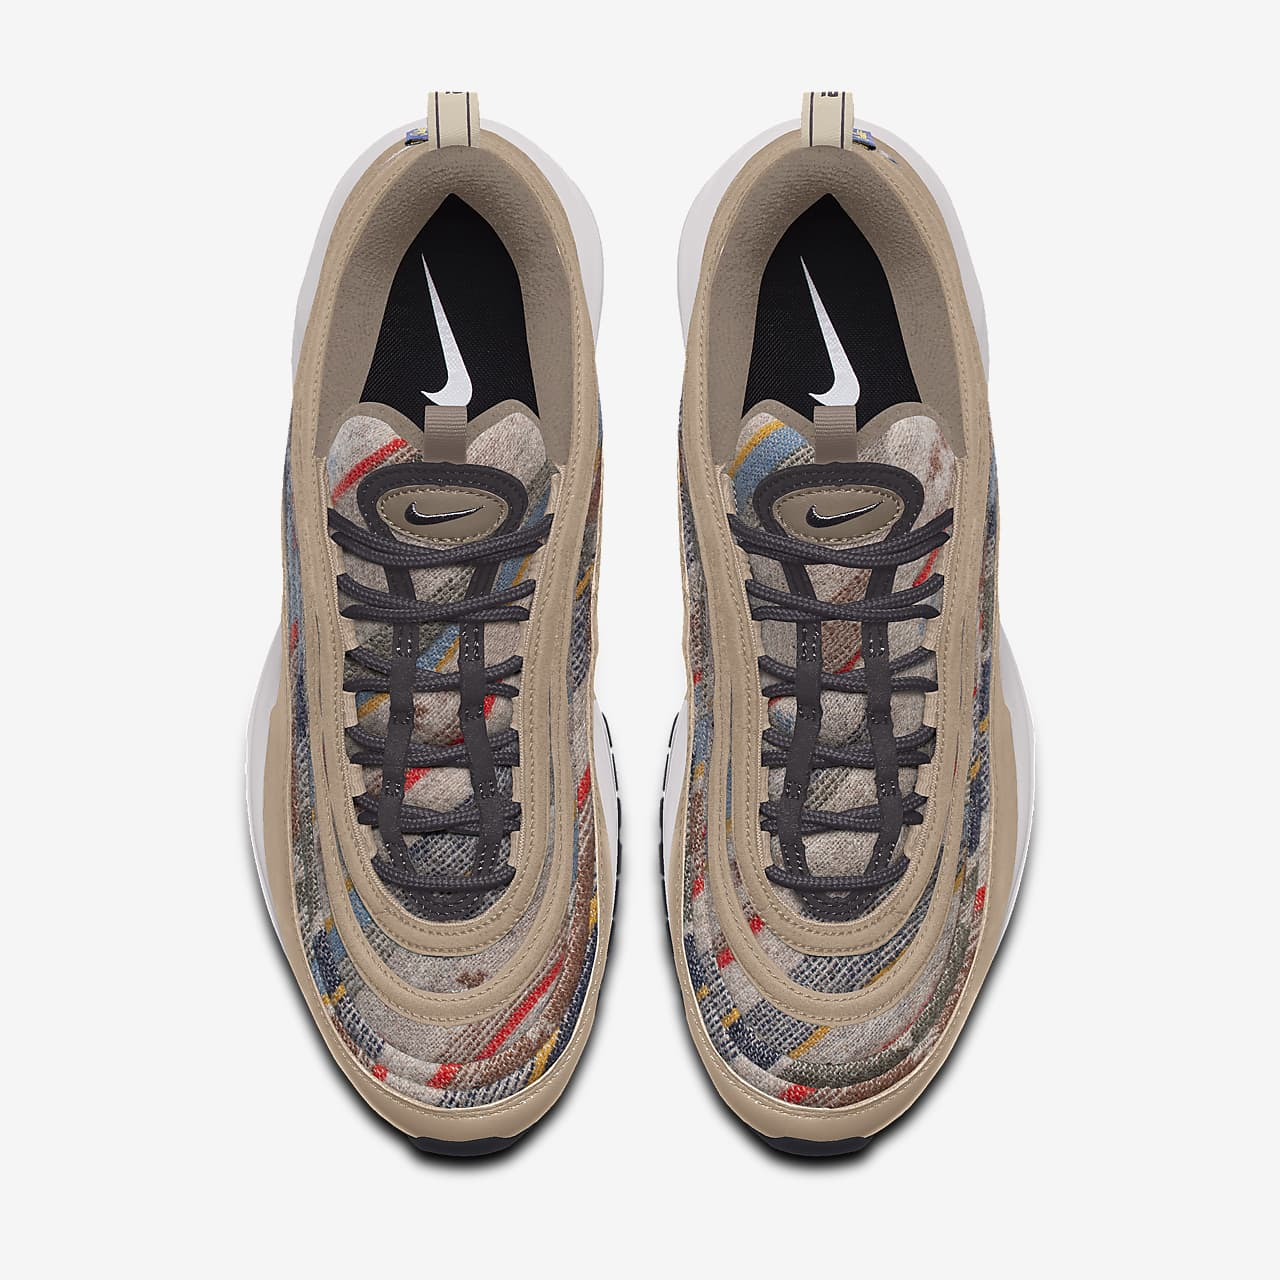 Chaussure personnalisable Nike Air Max 97 Premium By You